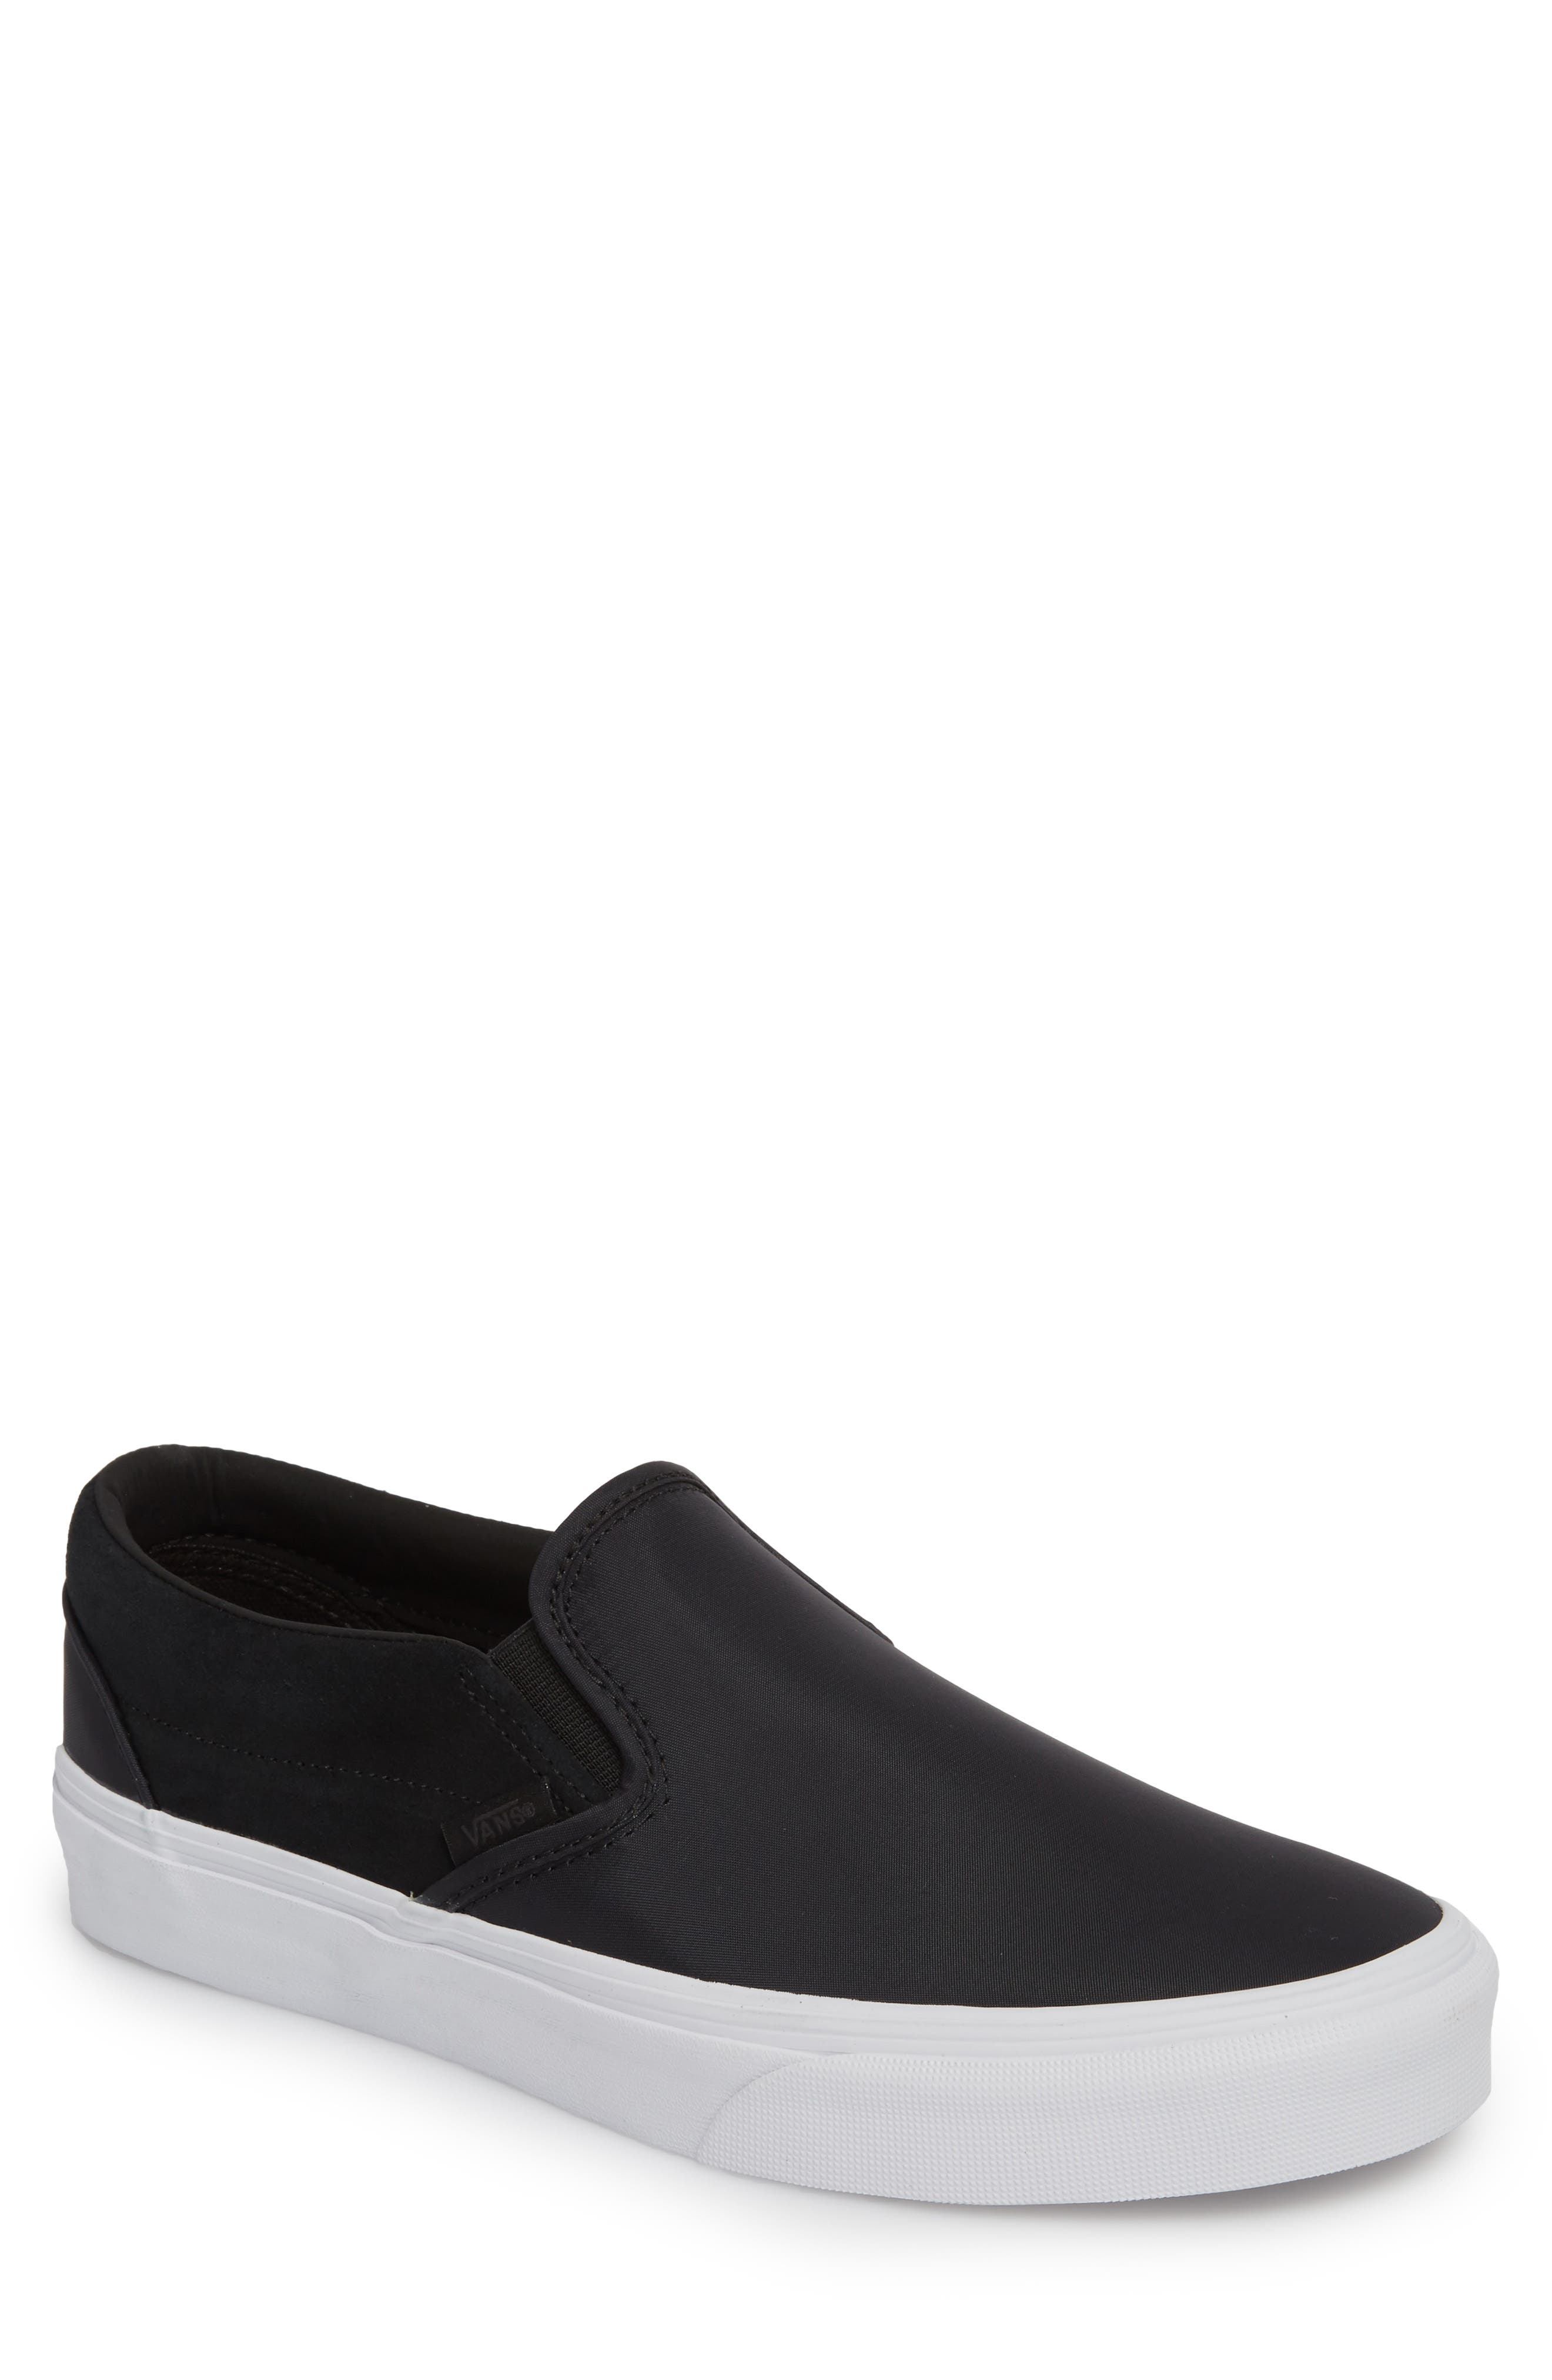 Surplus Nylon Slip-On Sneaker,                         Main,                         color, 001